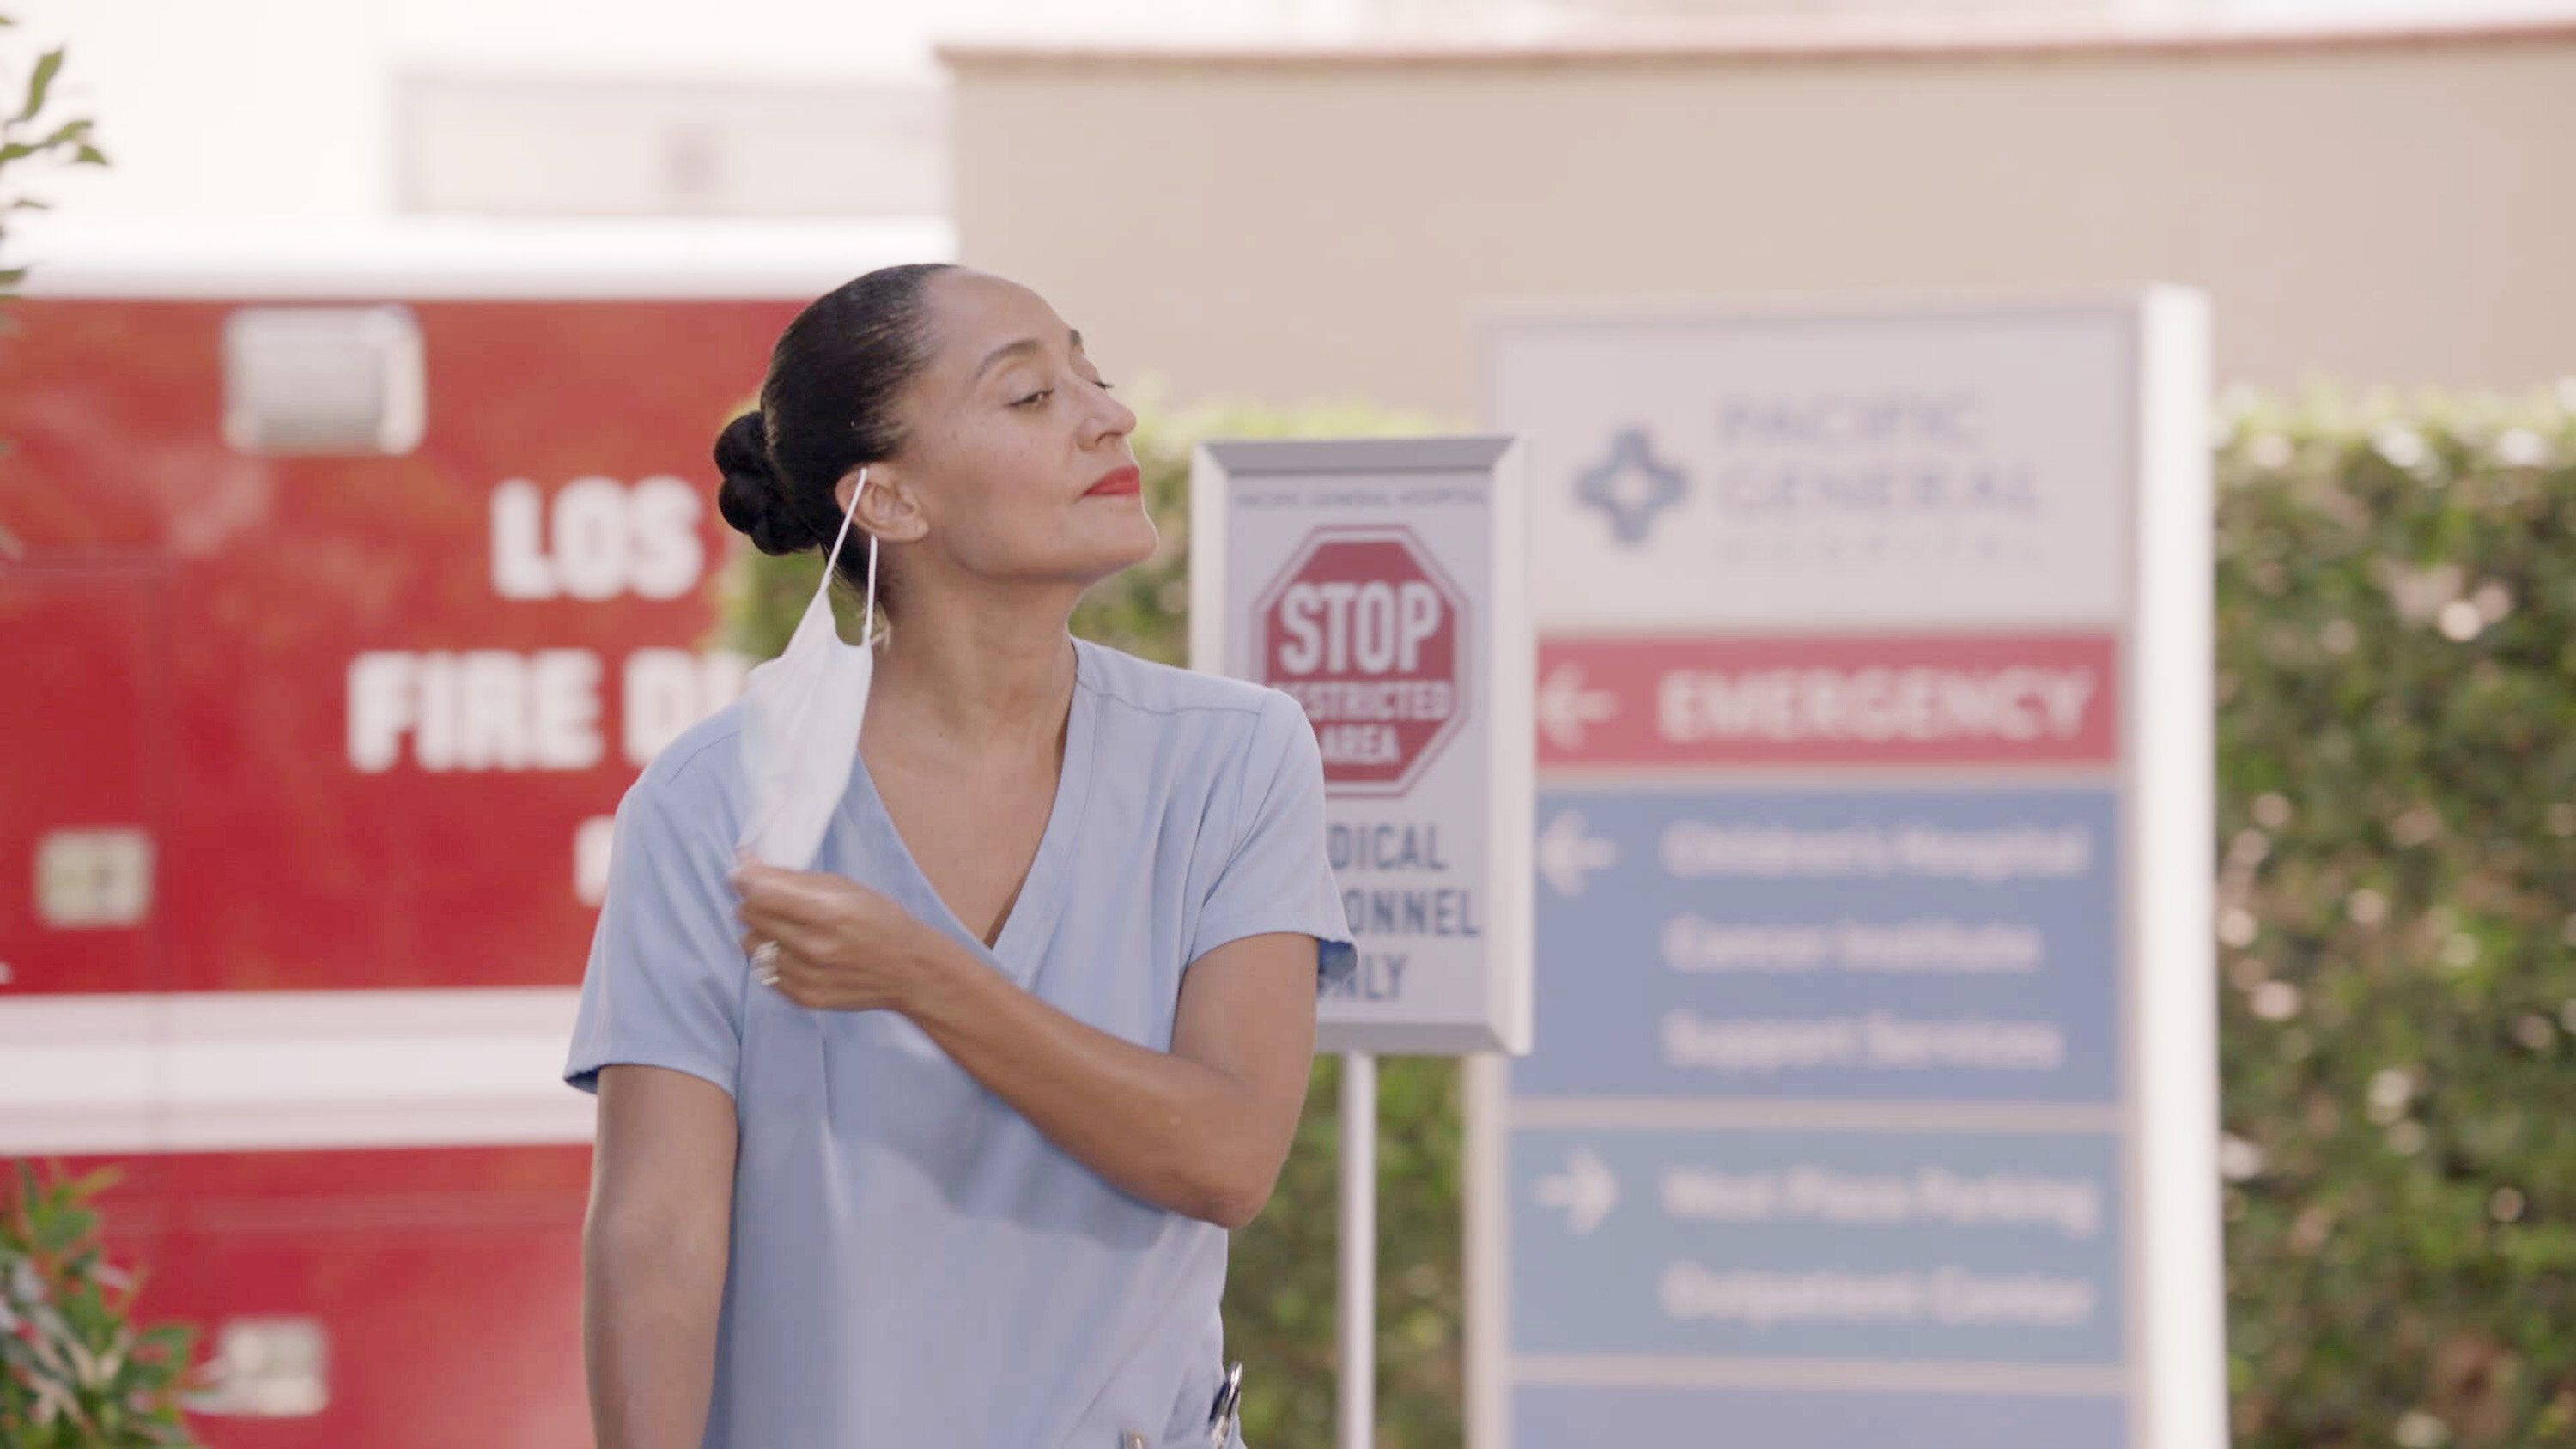 """The season premiere of """"black-ish"""" shows how the pandemic affectsDr. Rainbow Johnson (Tracee Ellis Ross) and her family"""